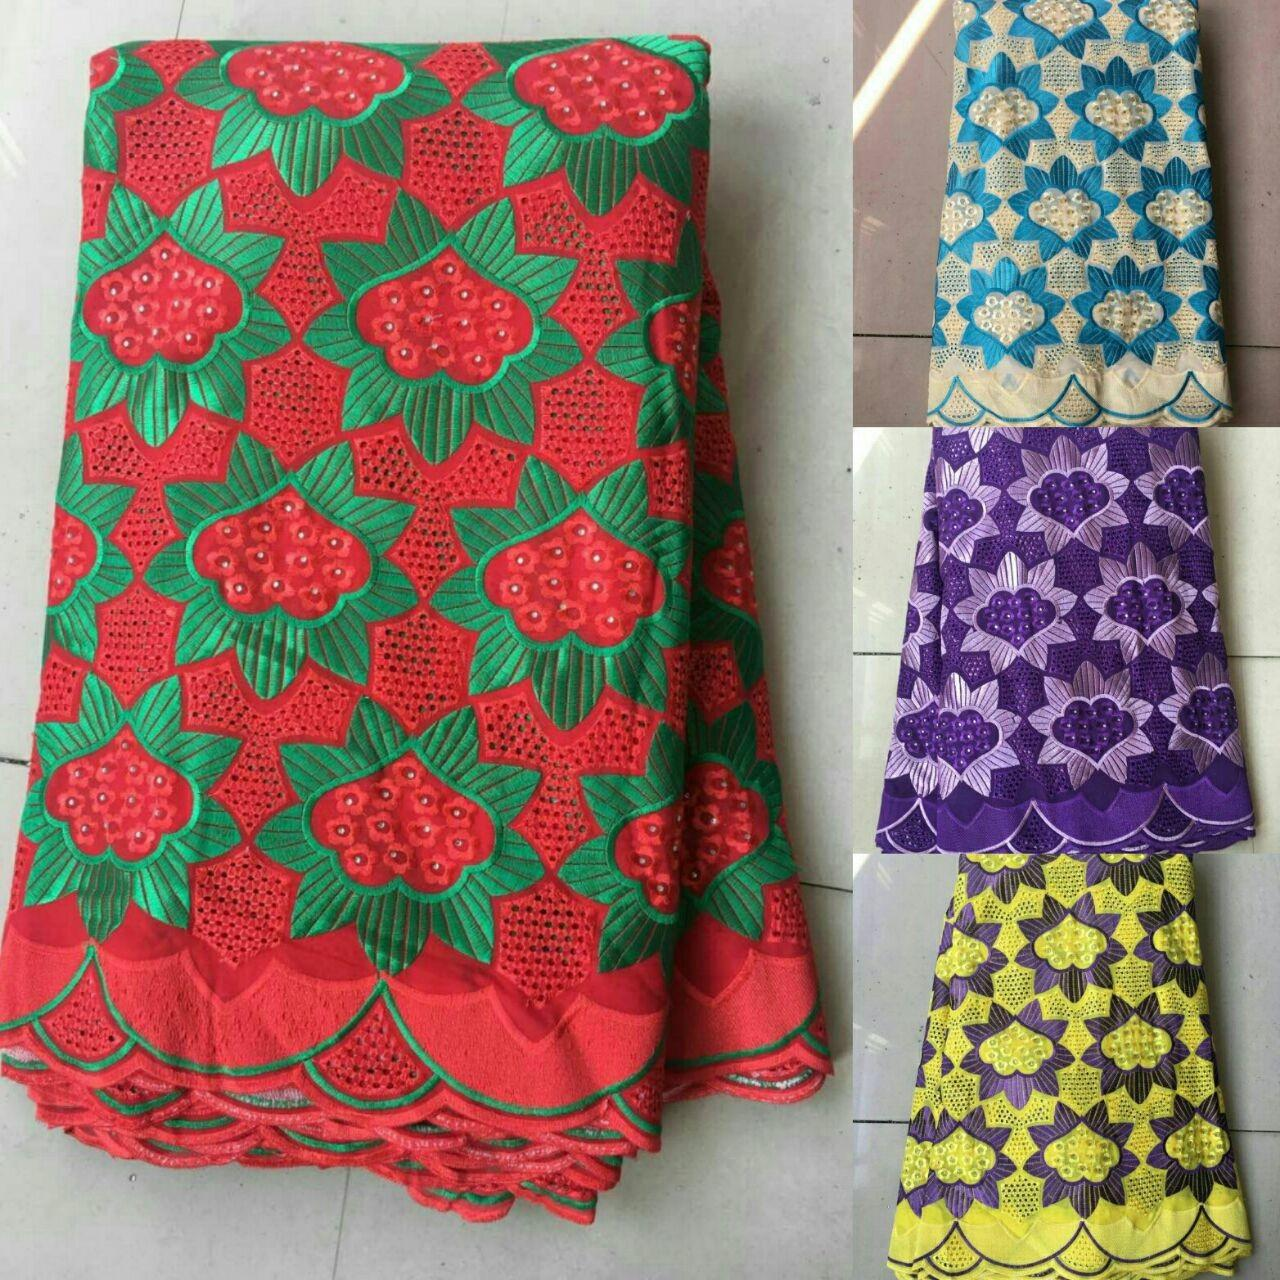 Quality Royal blue flower white lace embroidery natural polish lace fabric for many uses for sale